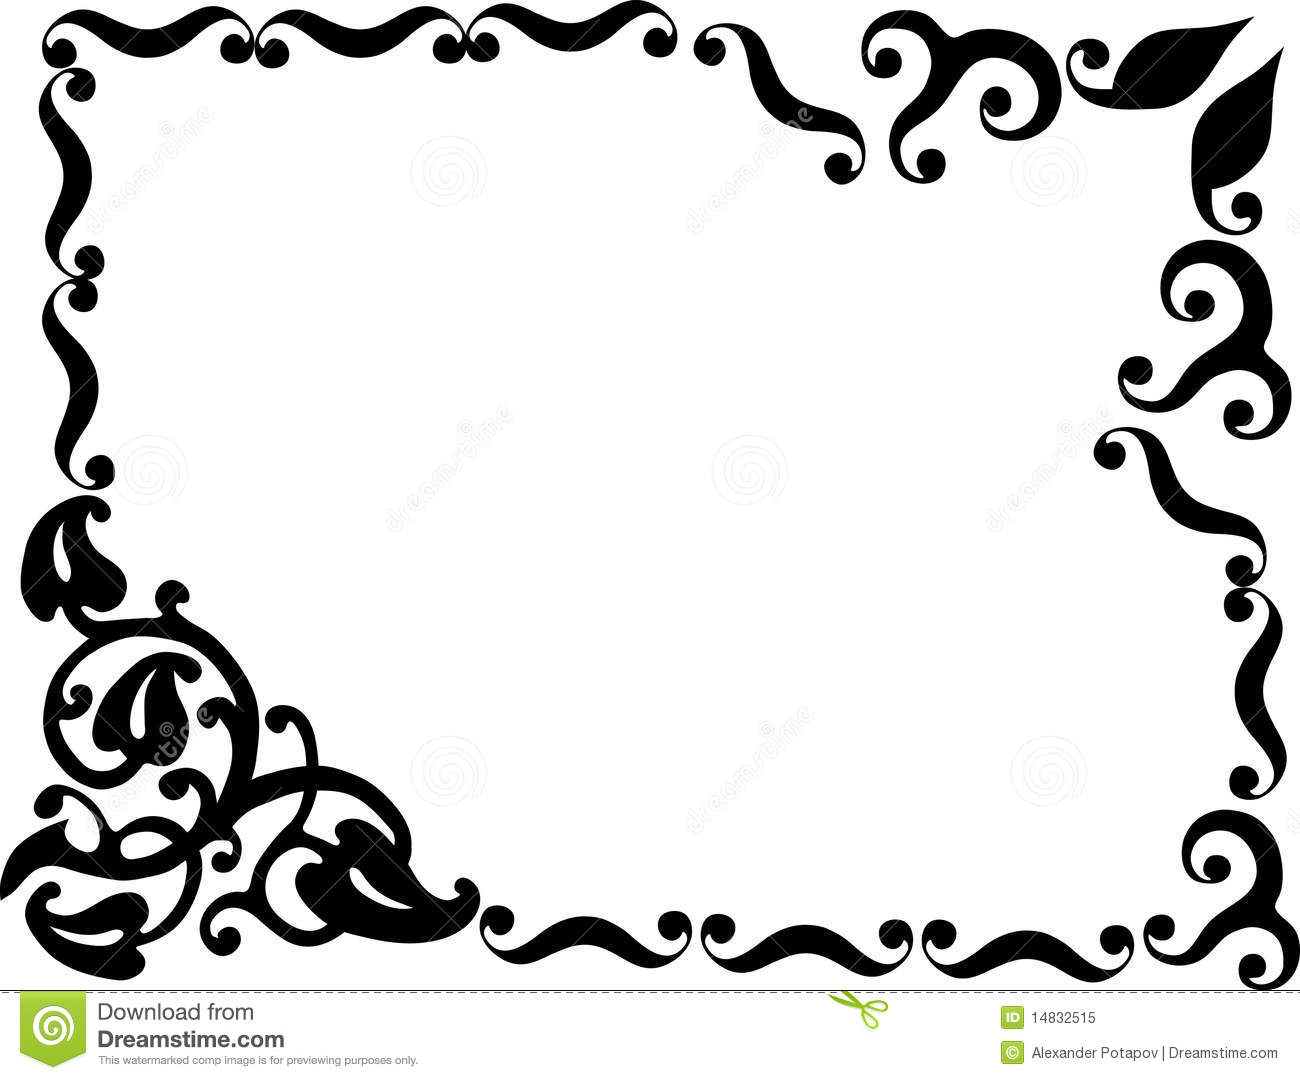 Simple Design With Black Frame Stock Vector - Illustration of part ...